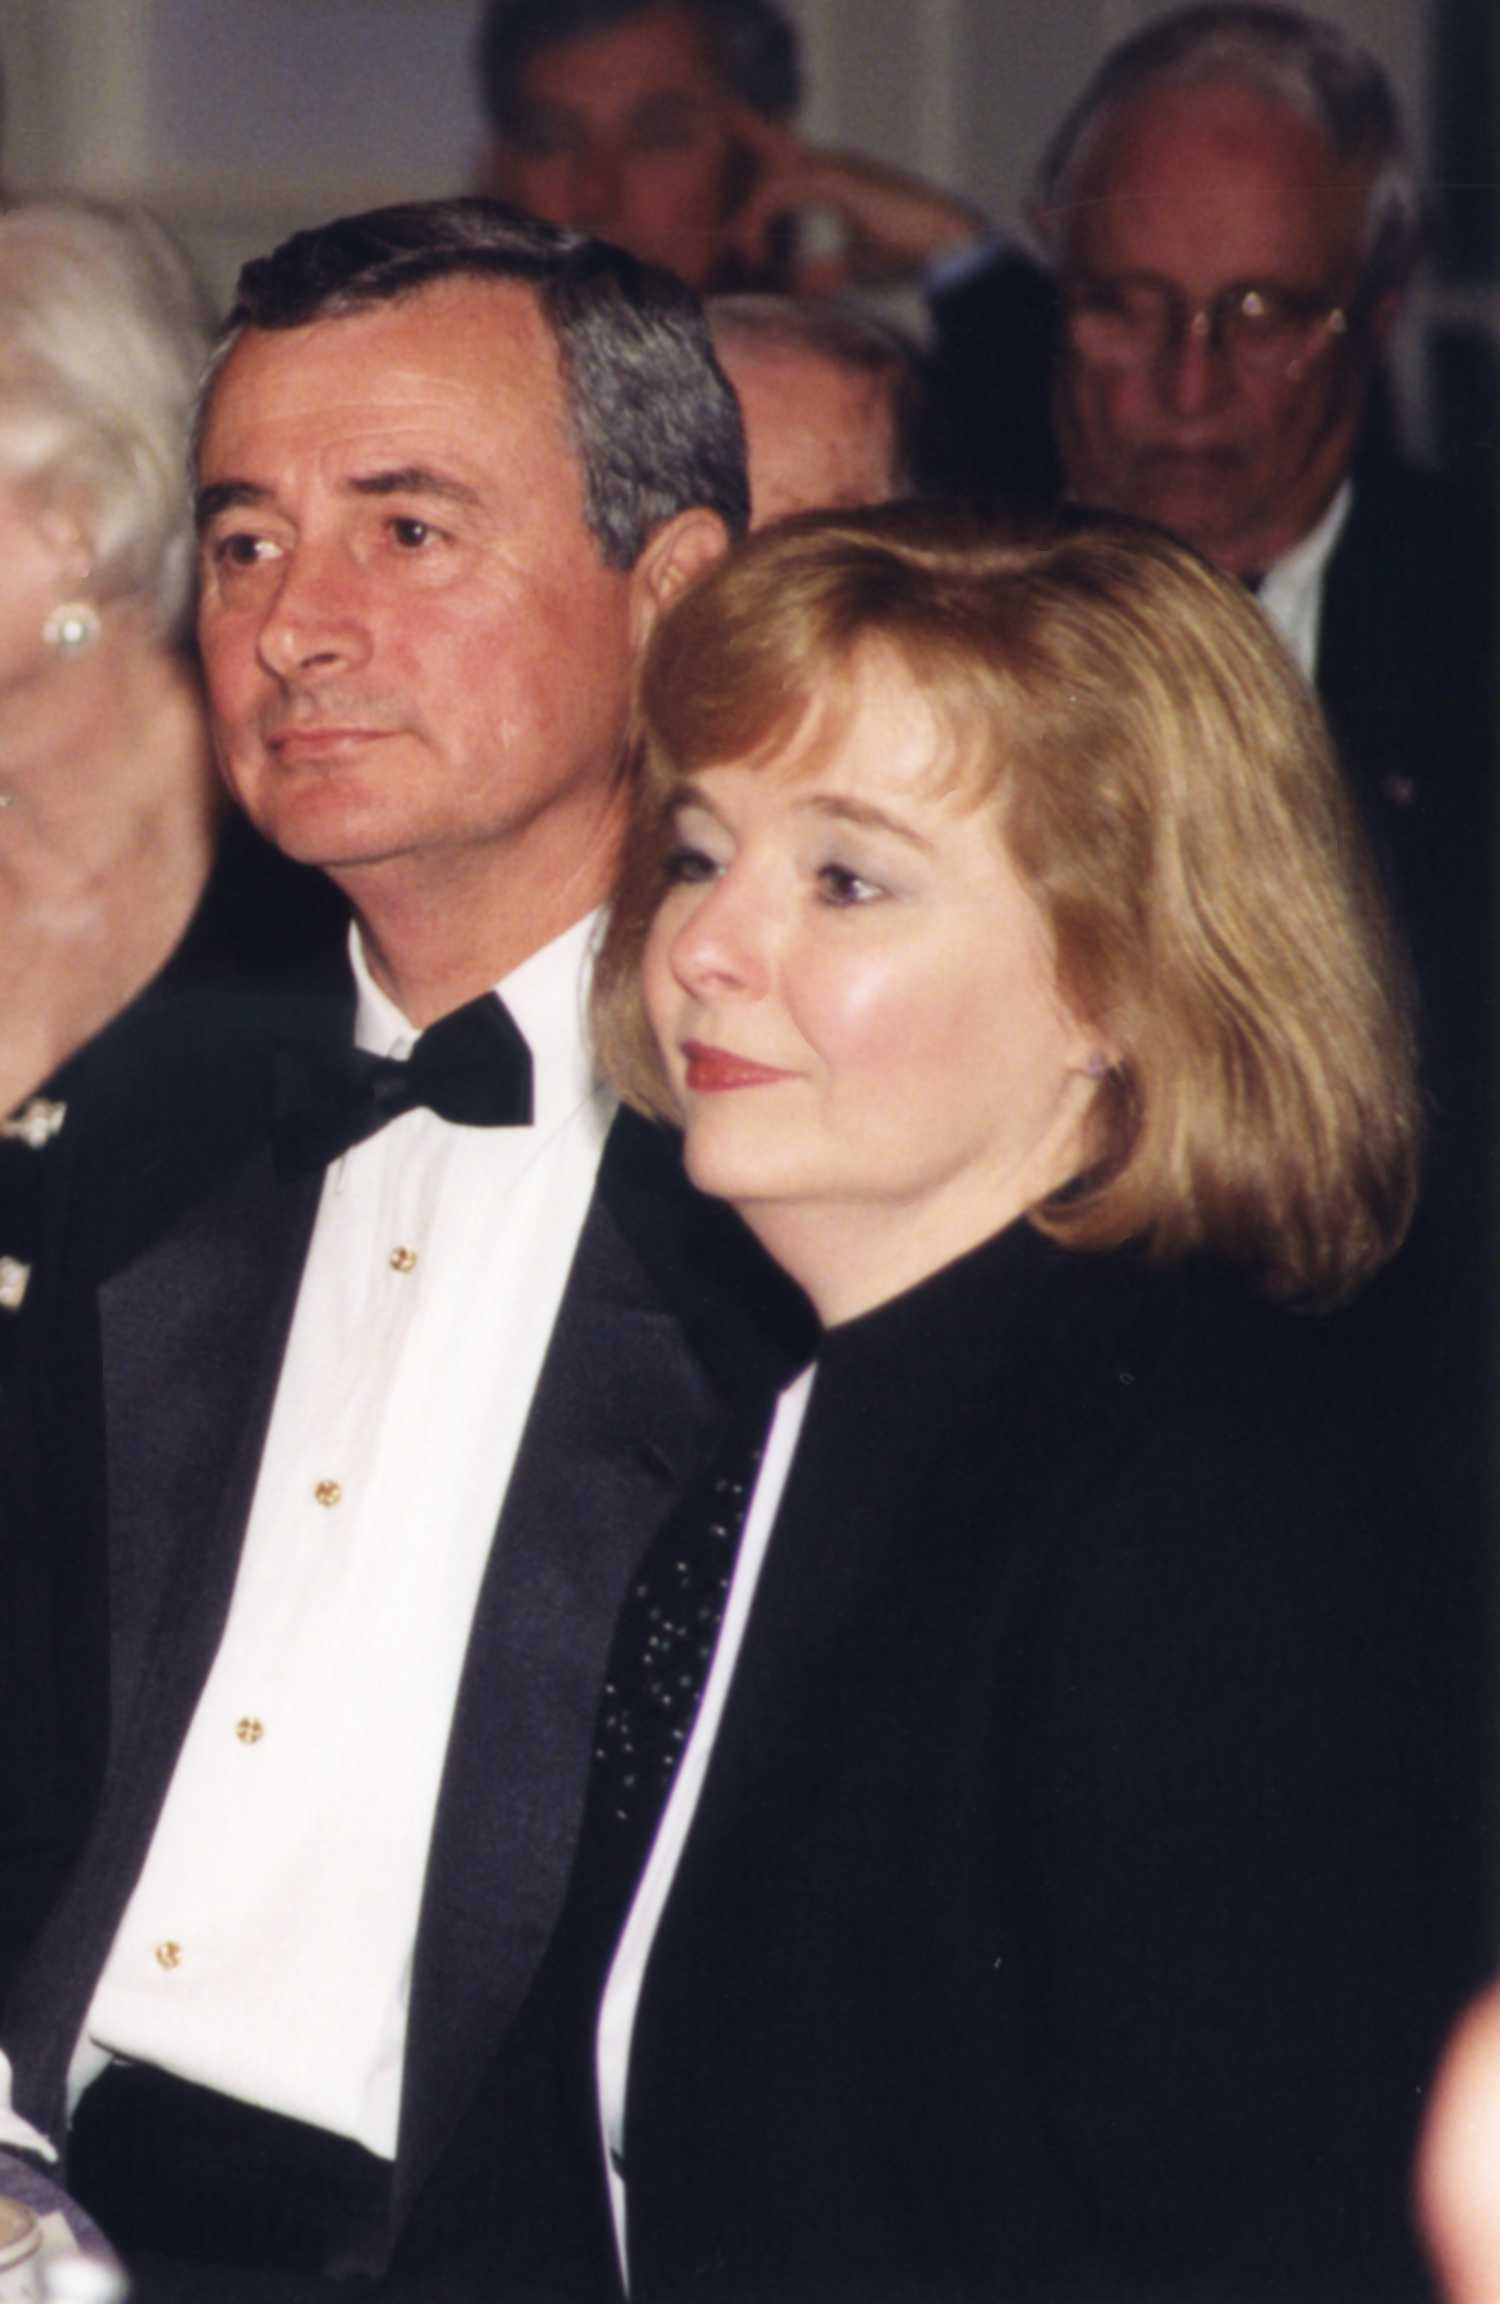 Dr. Tony Zeiss and his wife, Beth.